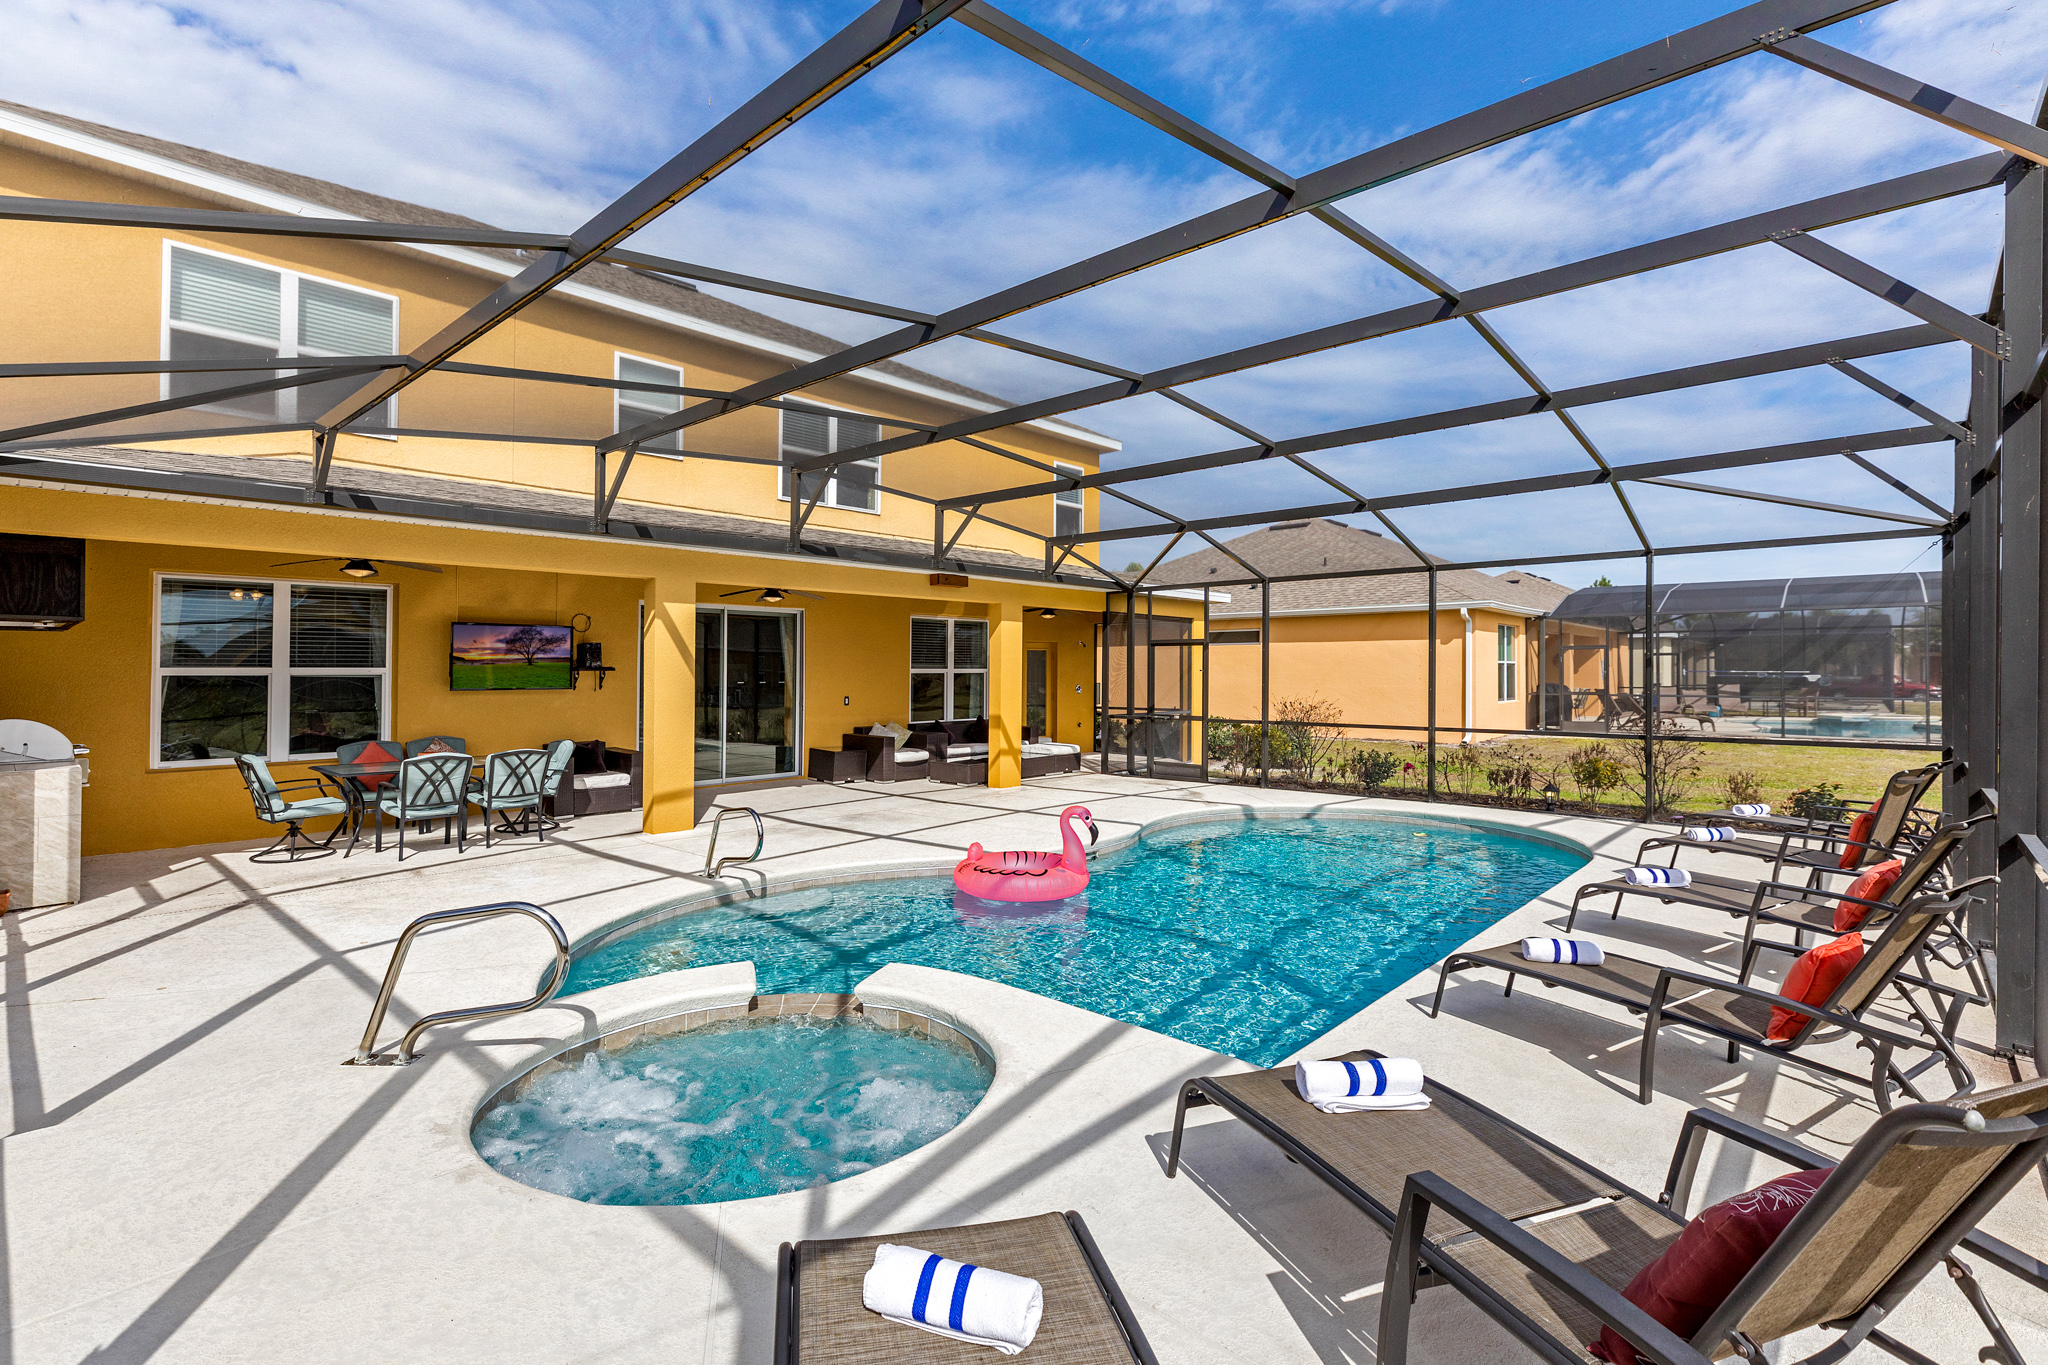 Watersong Resort/NW5984-146065